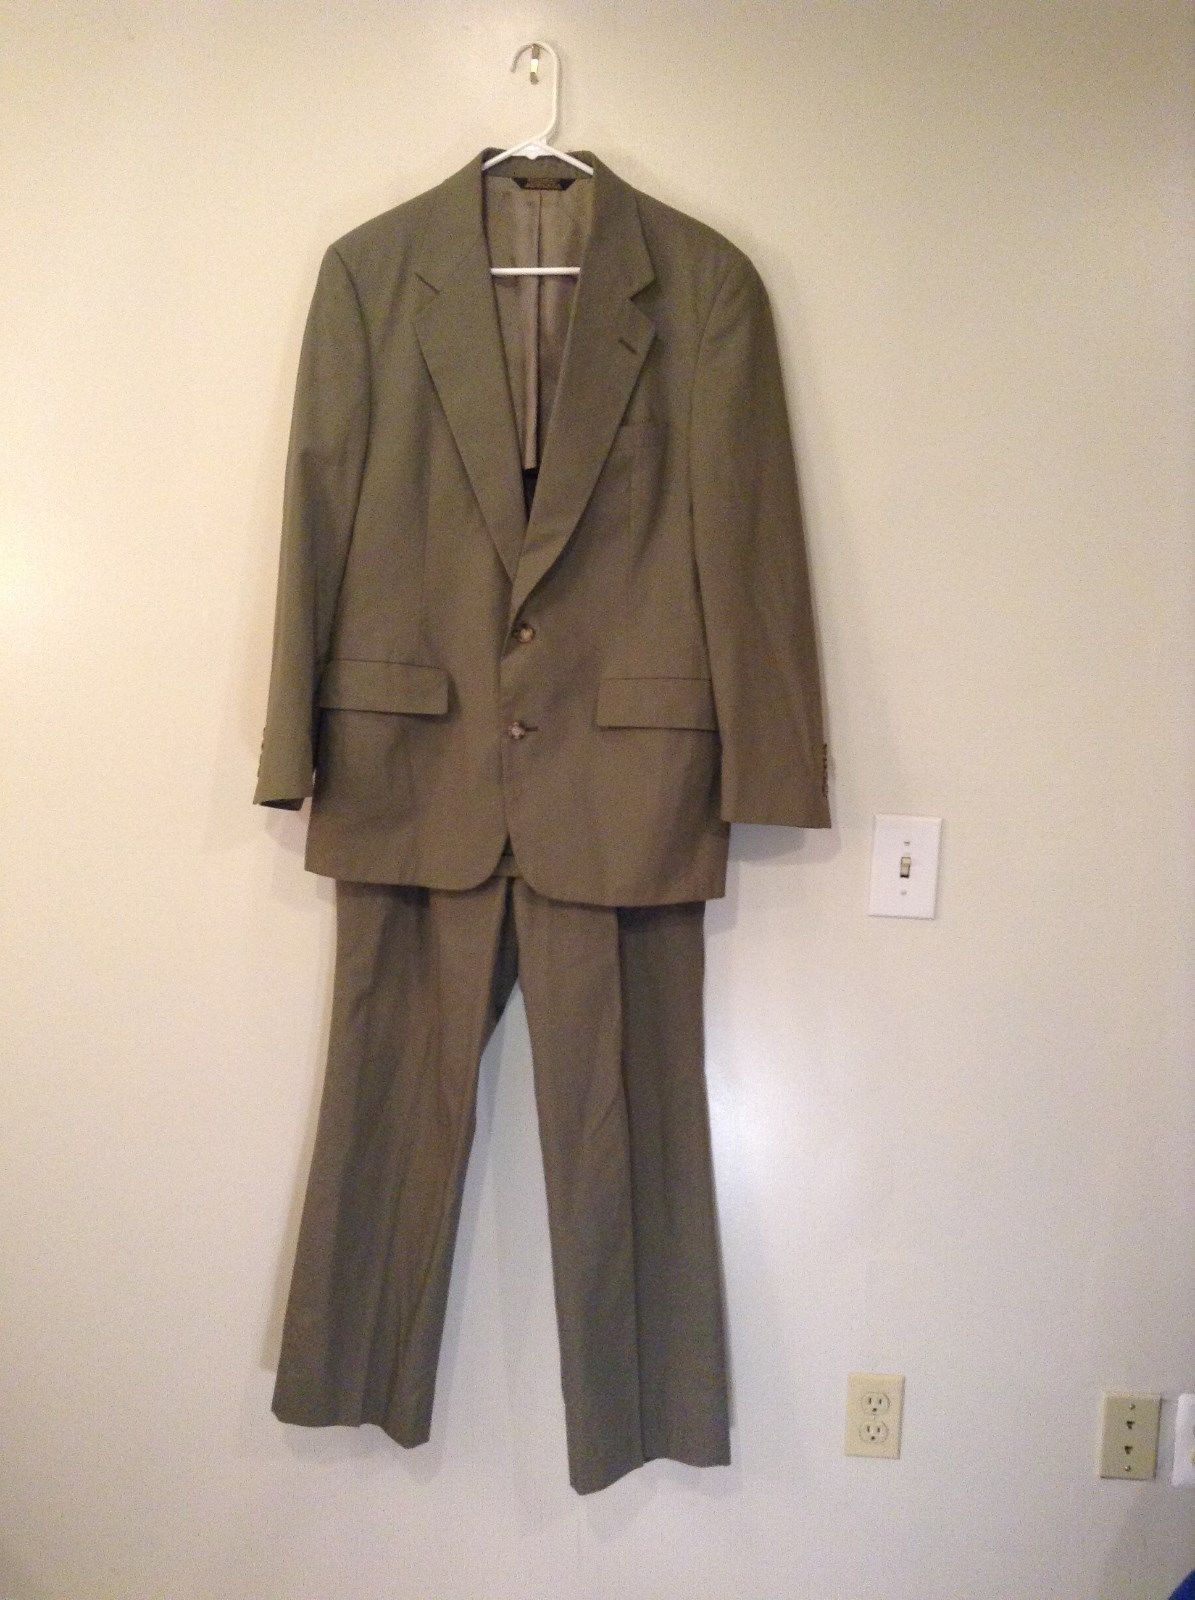 Dusty Green Brown Jacket and Pant Suit Saks Fifth Avenue Measurements Below